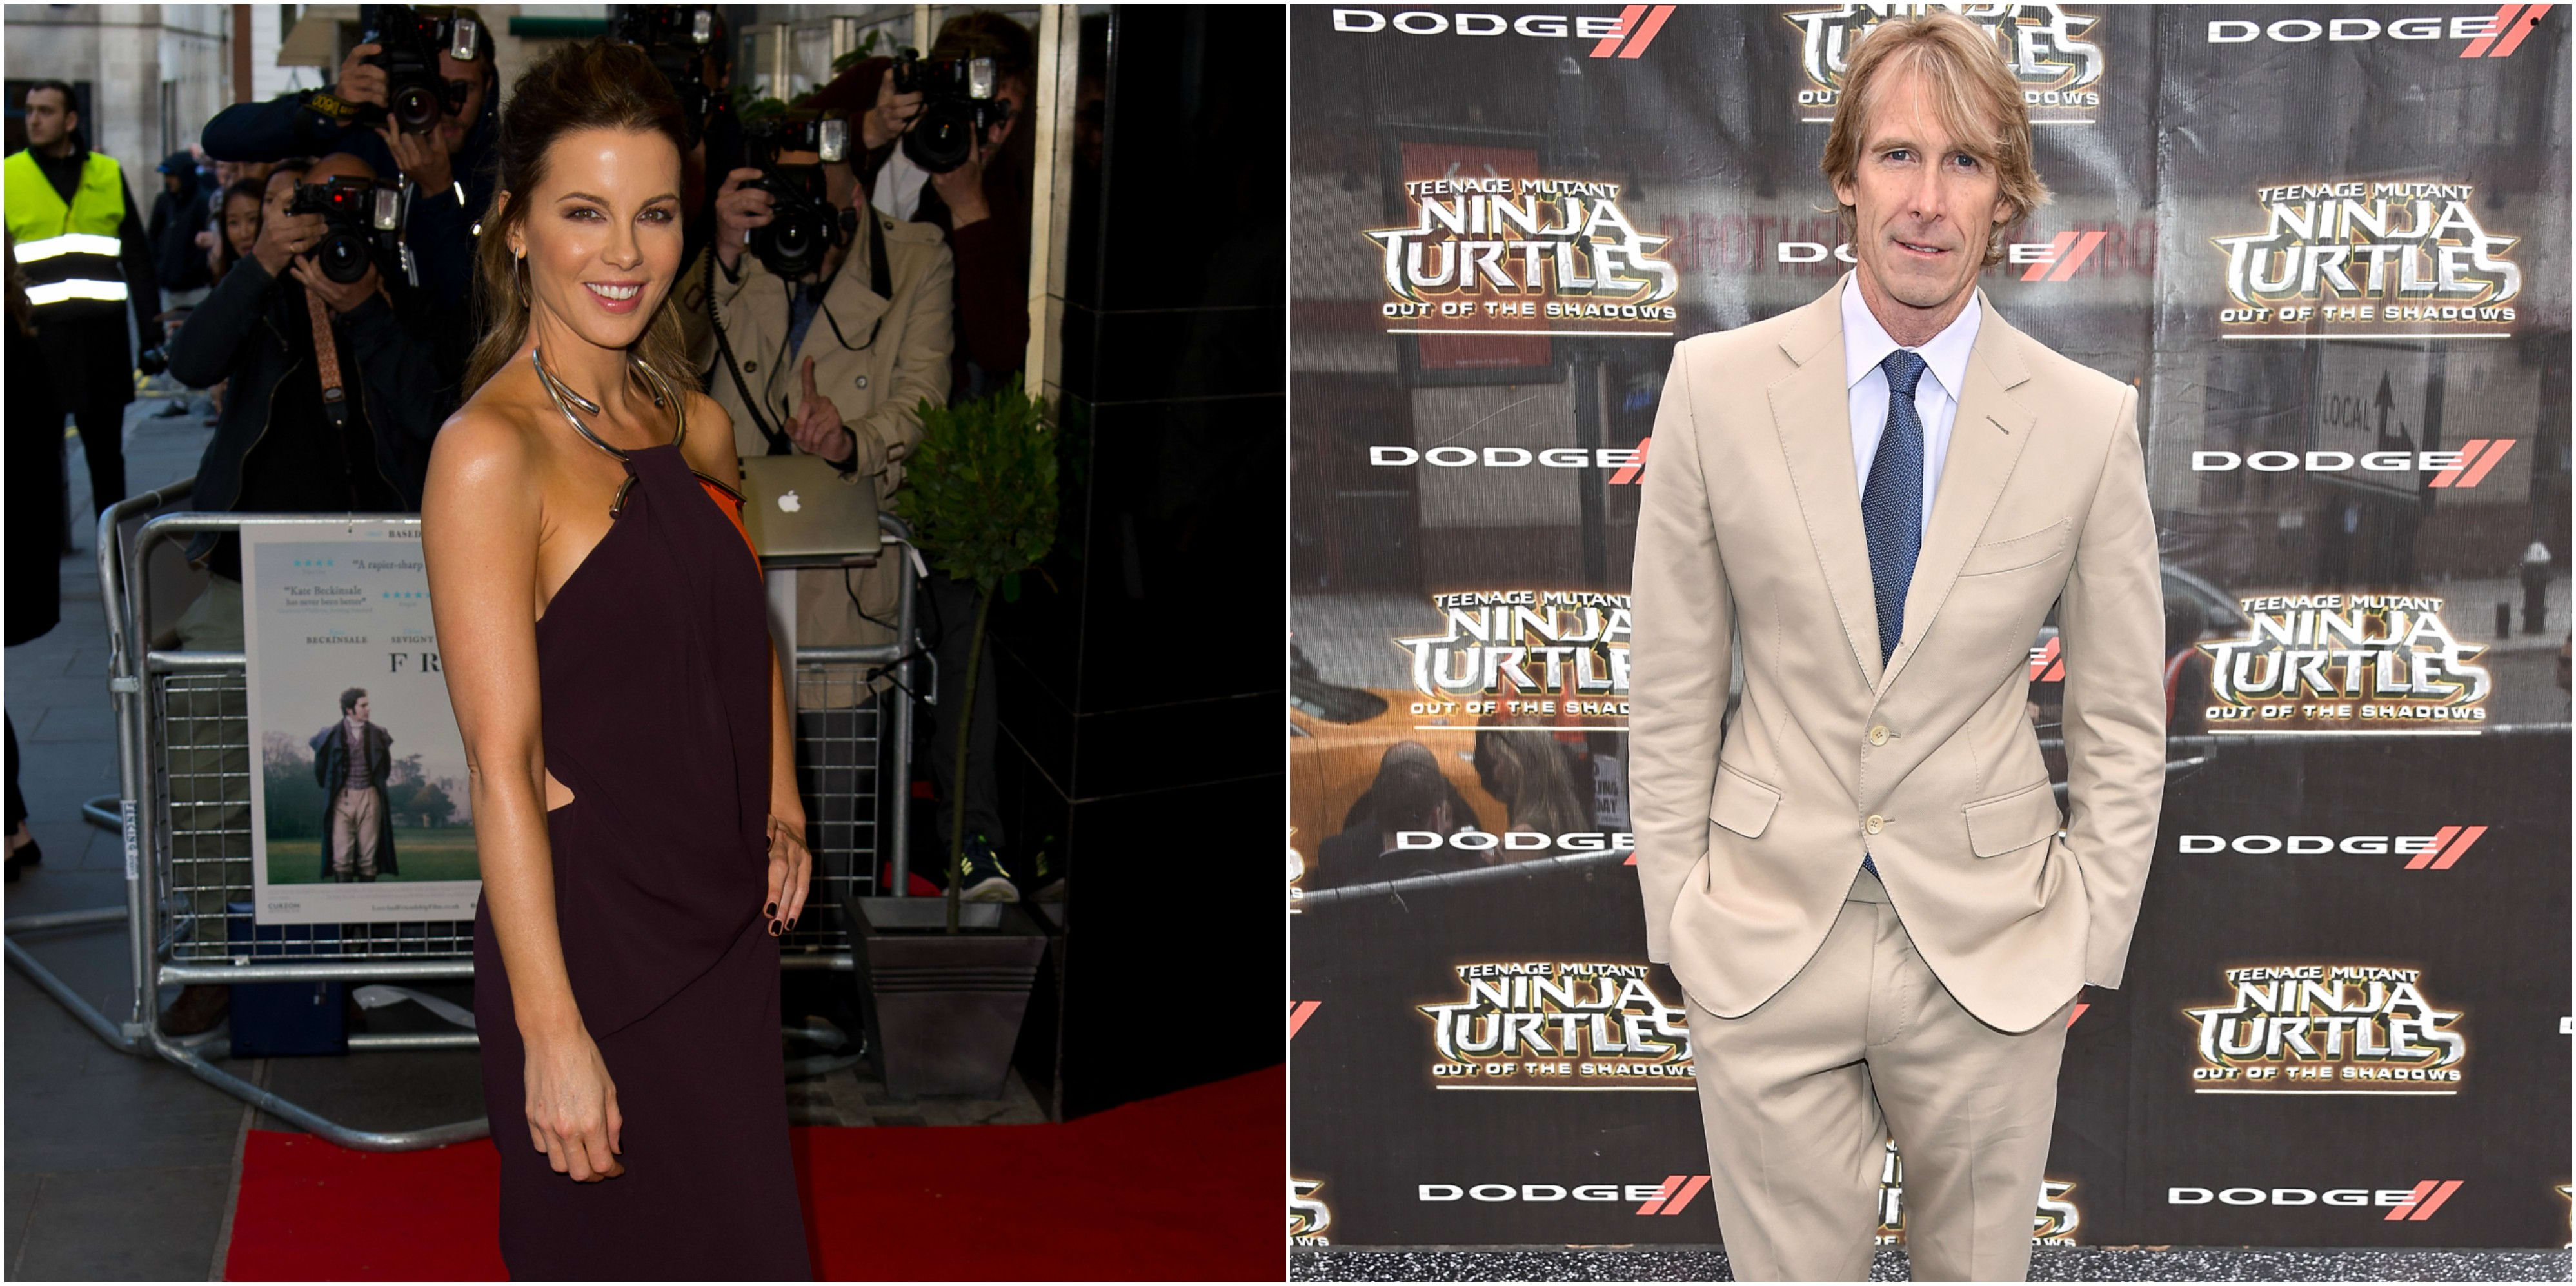 Michael Bay - The Hollywood Gossip